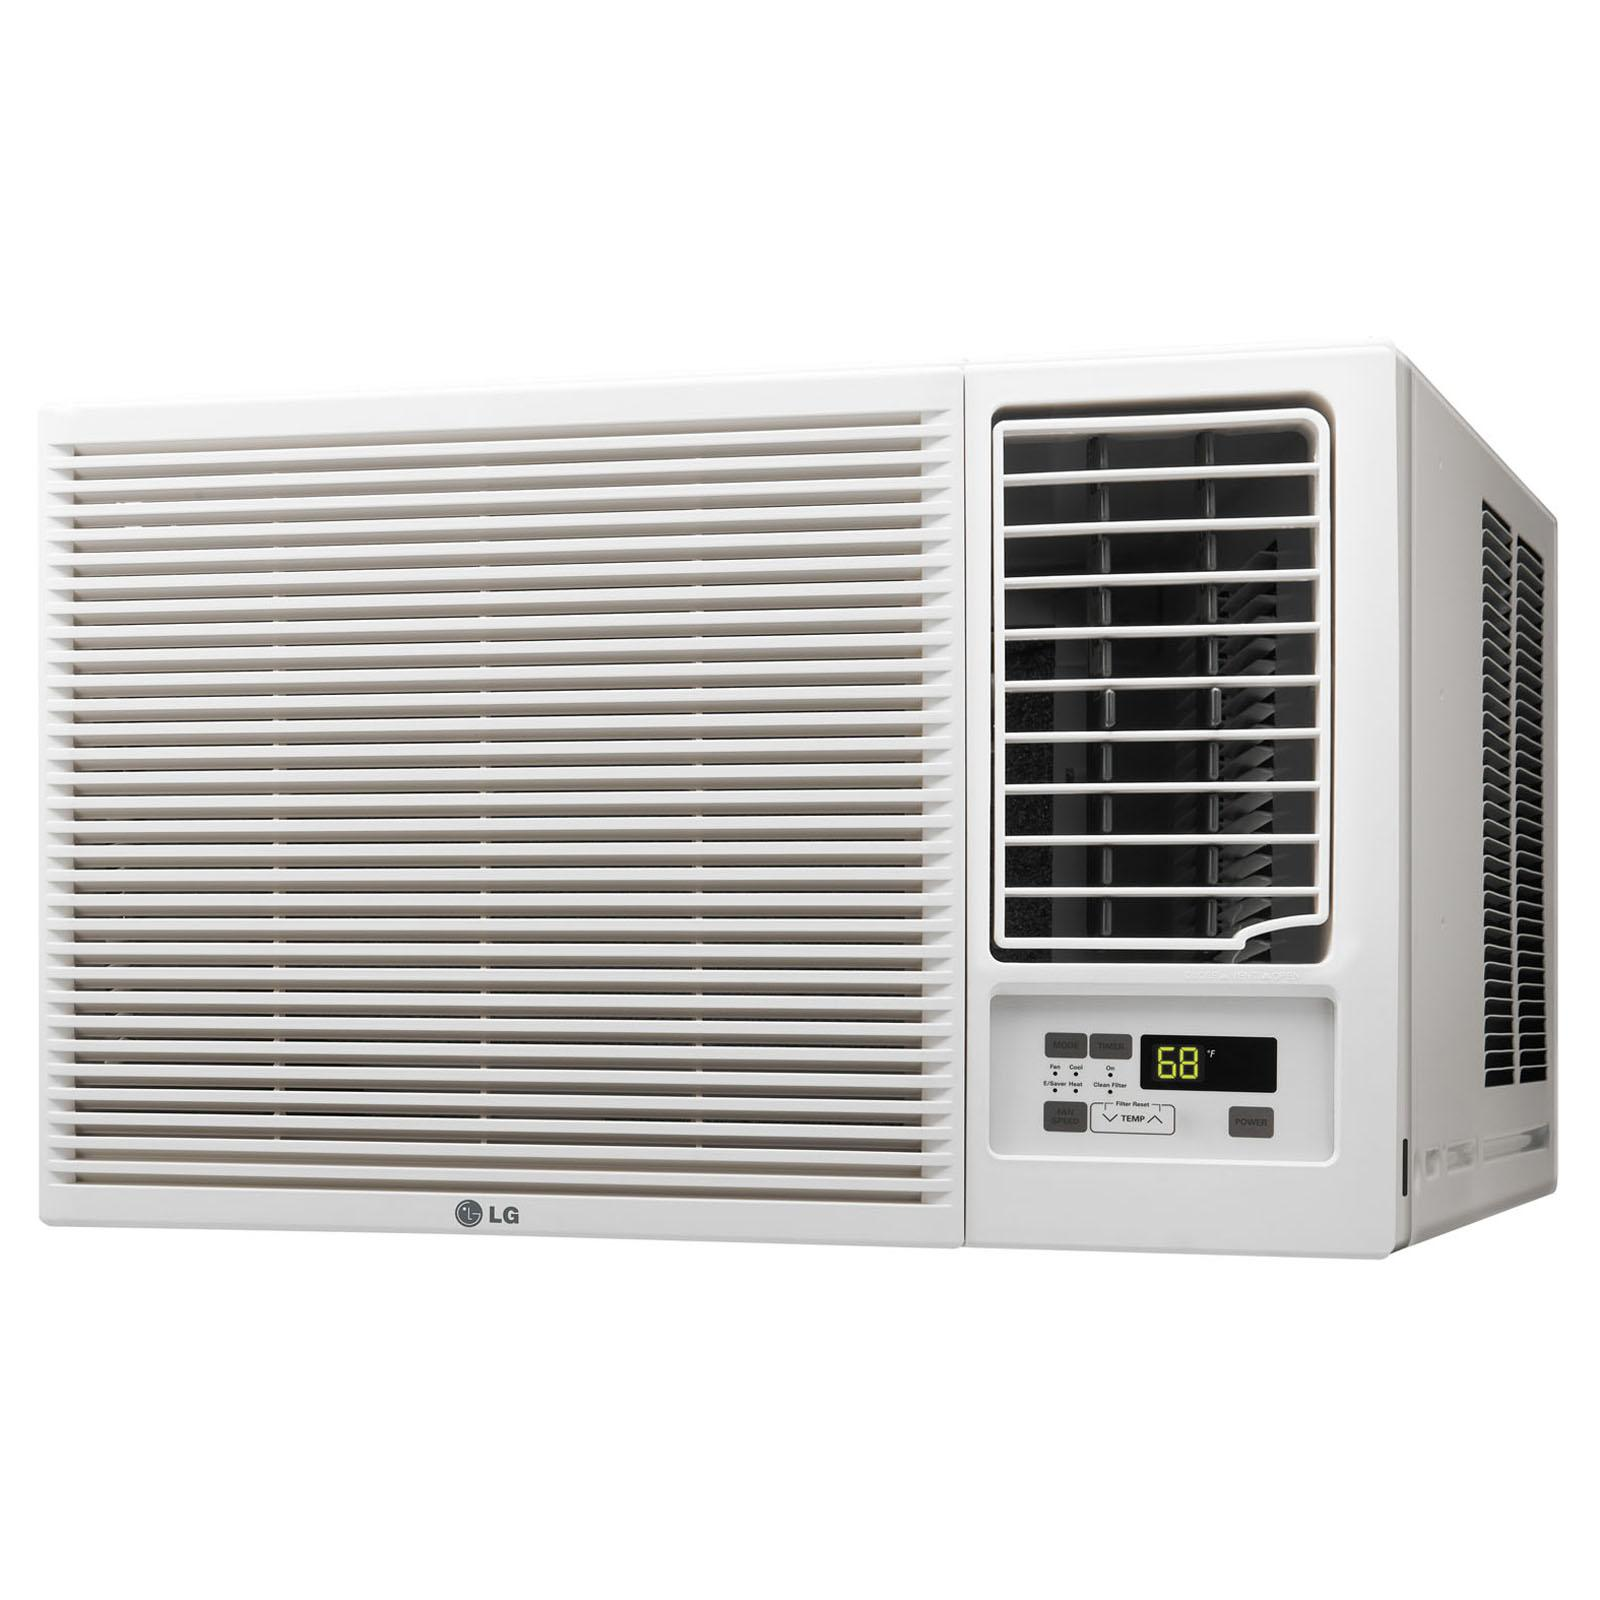 LG 23000 BTU 230V Window-Mounted Air Conditioner with 116...